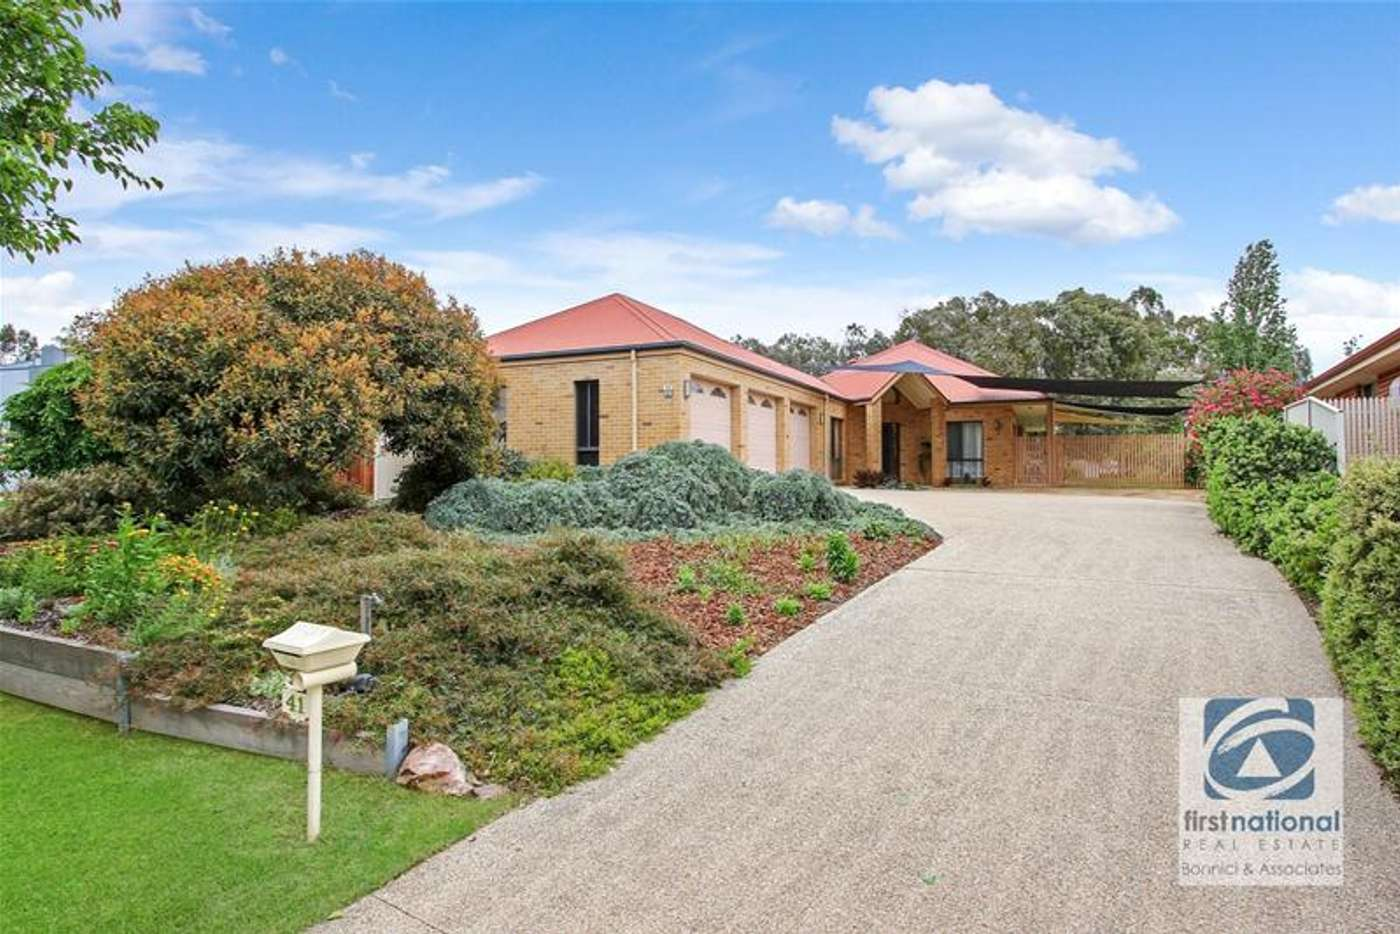 Main view of Homely house listing, 41 Memorial Drive, Wodonga VIC 3690